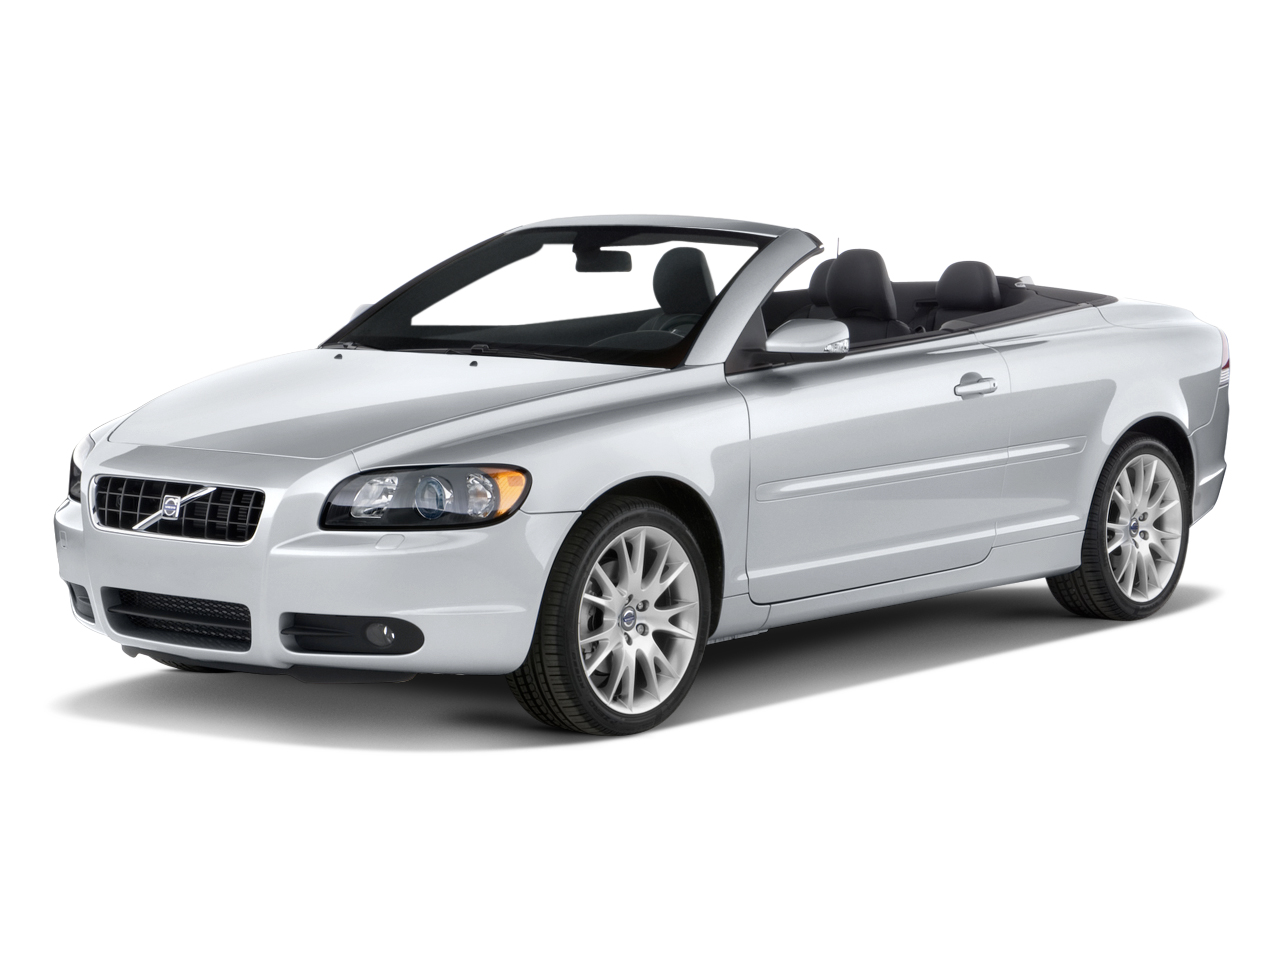 2010 volvo c70 review ratings specs prices and photos the car connection. Black Bedroom Furniture Sets. Home Design Ideas